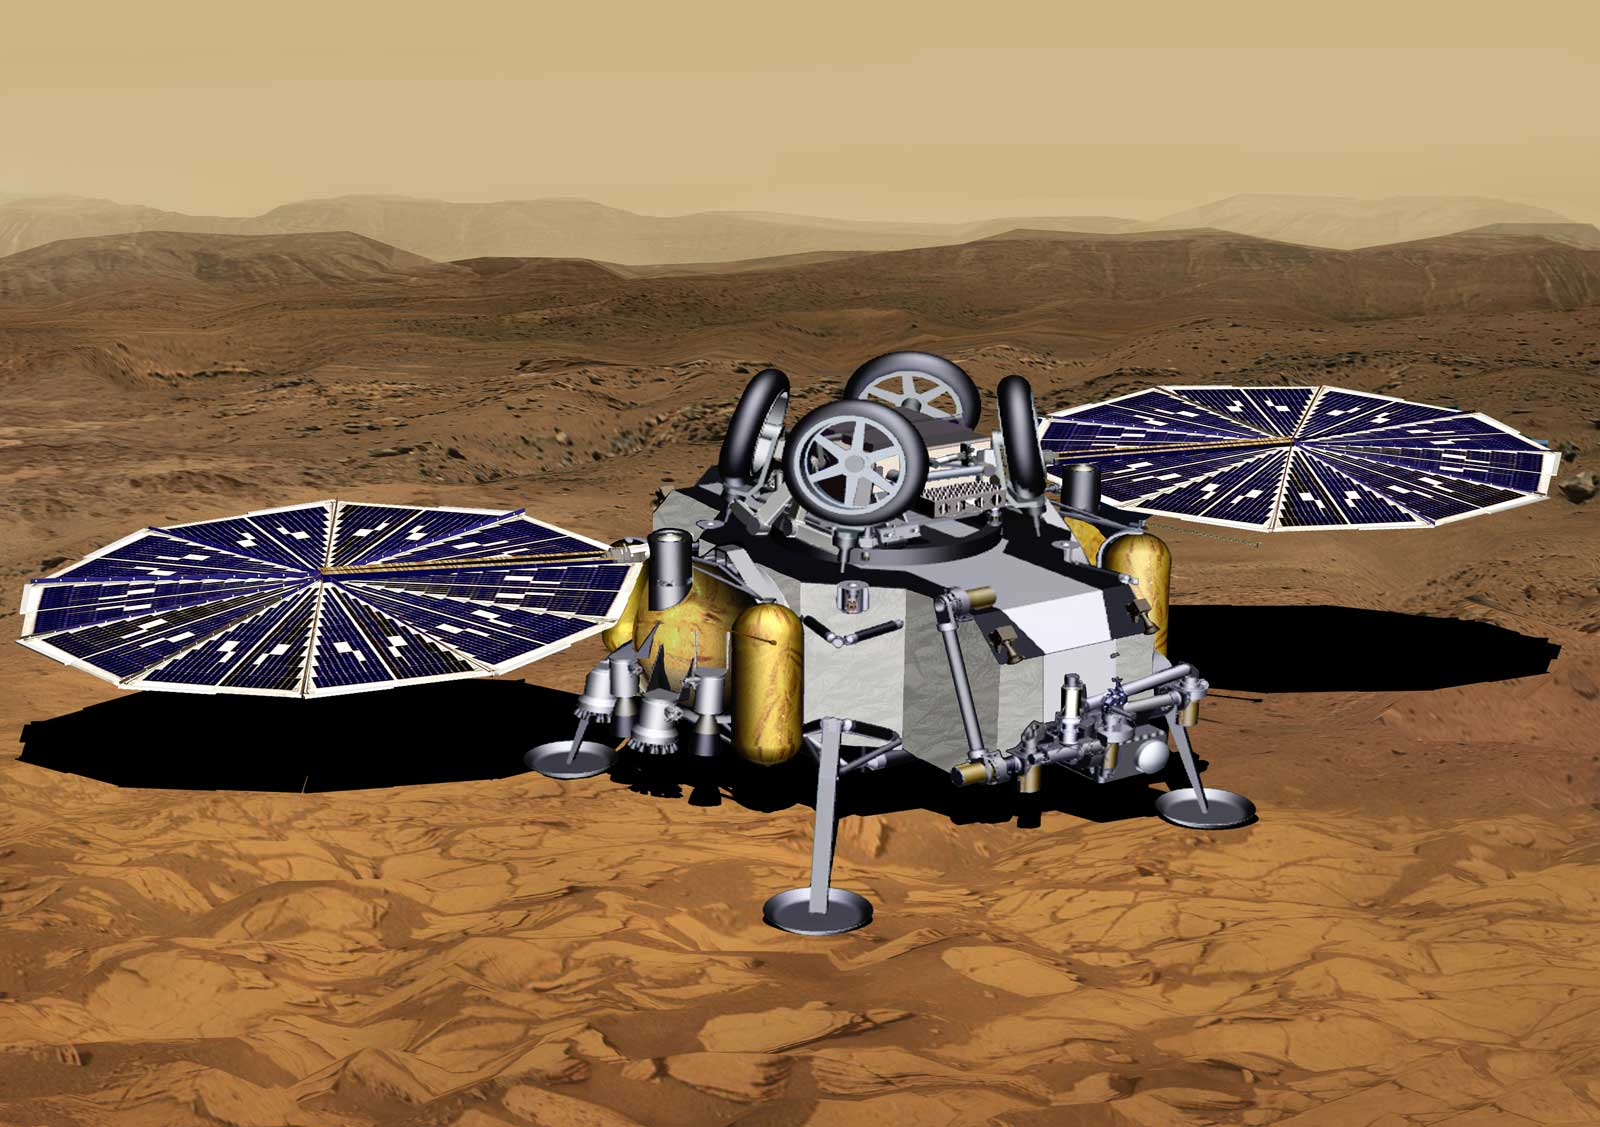 This illustration of a Mars sample return mission's lander concept shows a spacecraft after touchdown on the Red Planet.